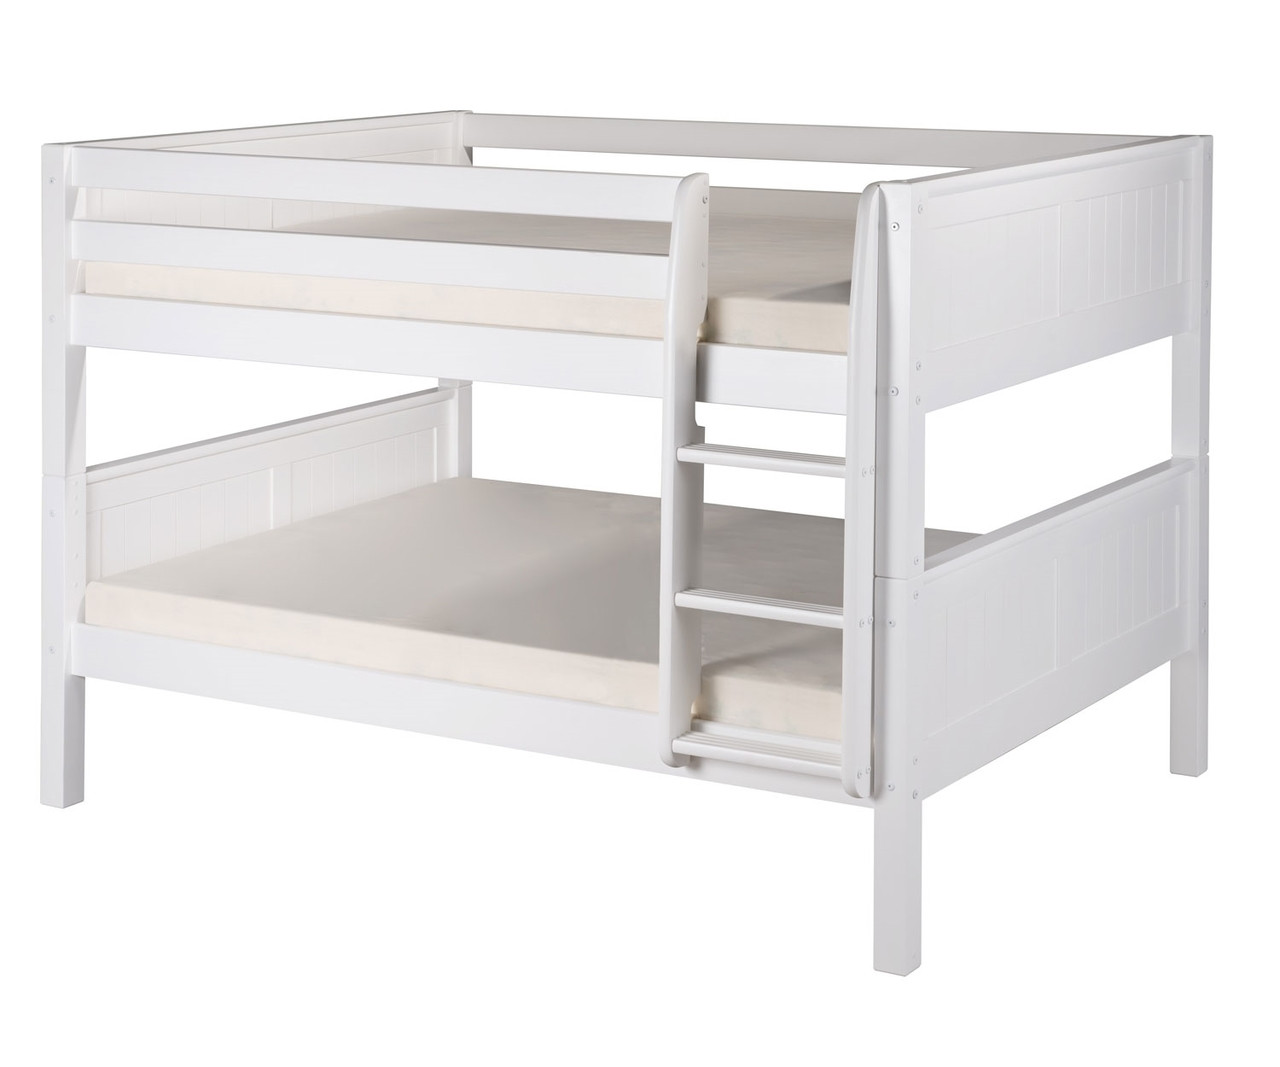 Picture of: Camaflexi Full Over Full Bunk Bed In White Finish E2223 Camaflexi Furniture Solid Wood Kids Furniture